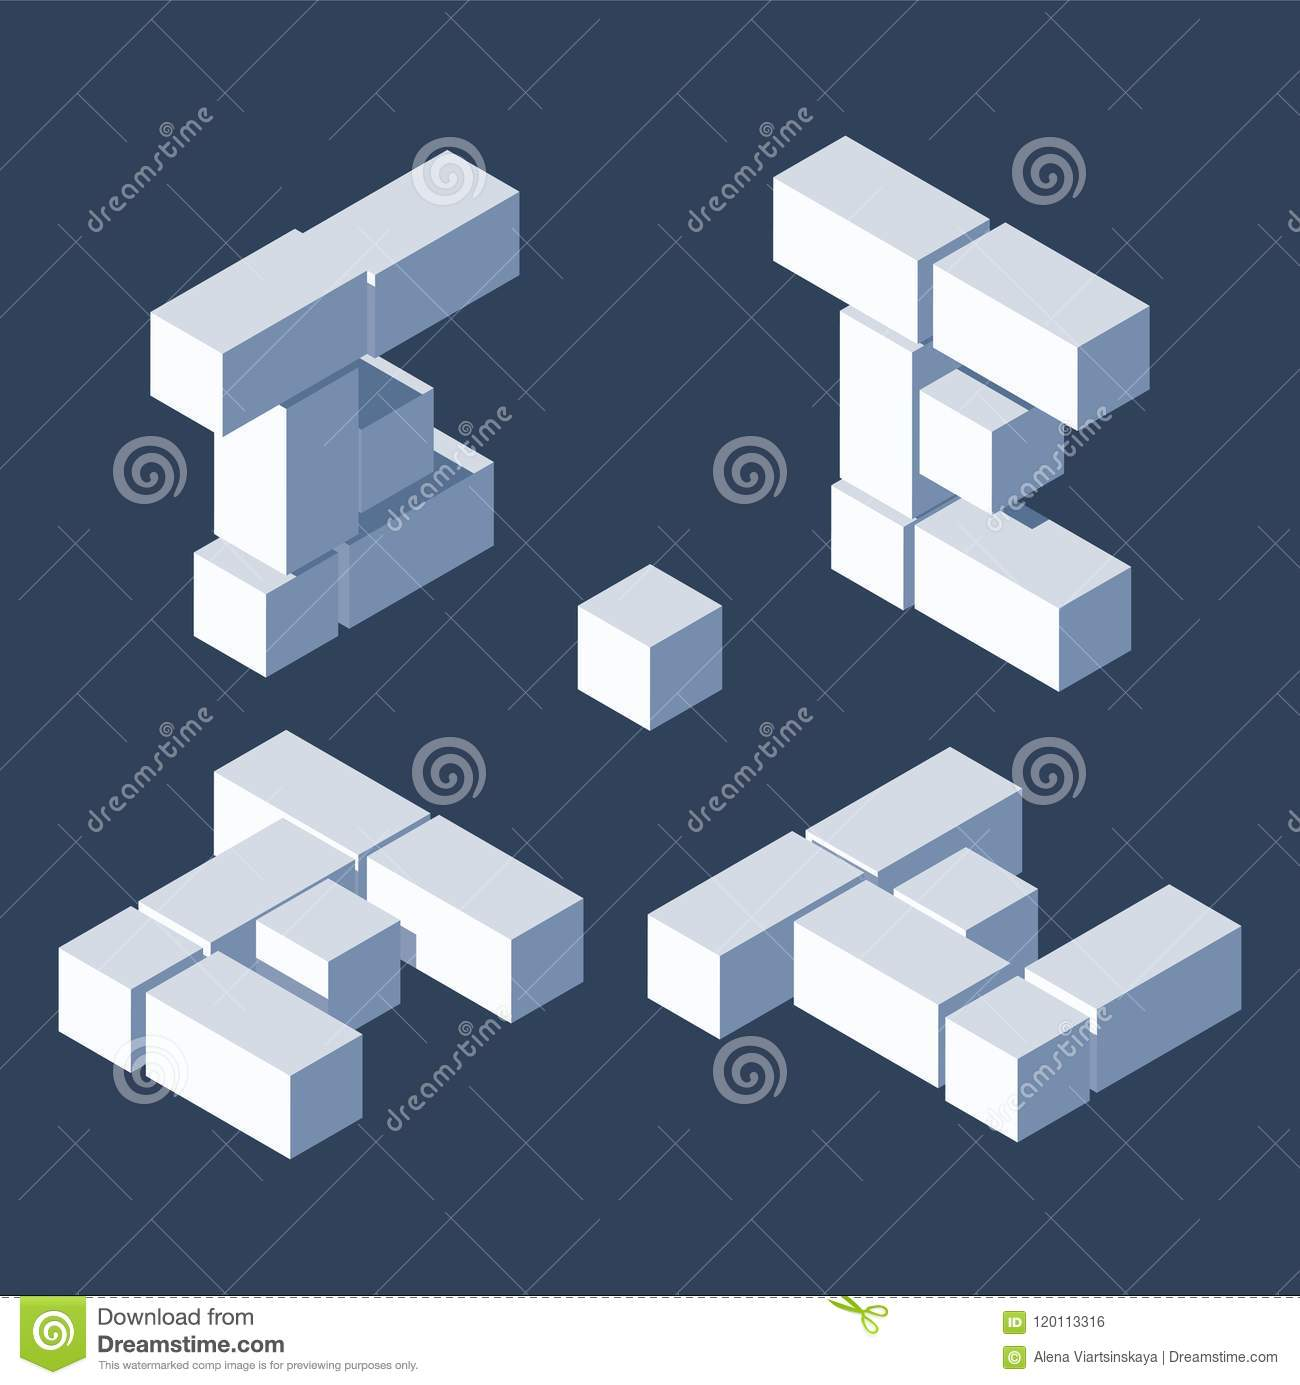 Isometric Letters E In Varions Views  Made With 3d Blocks